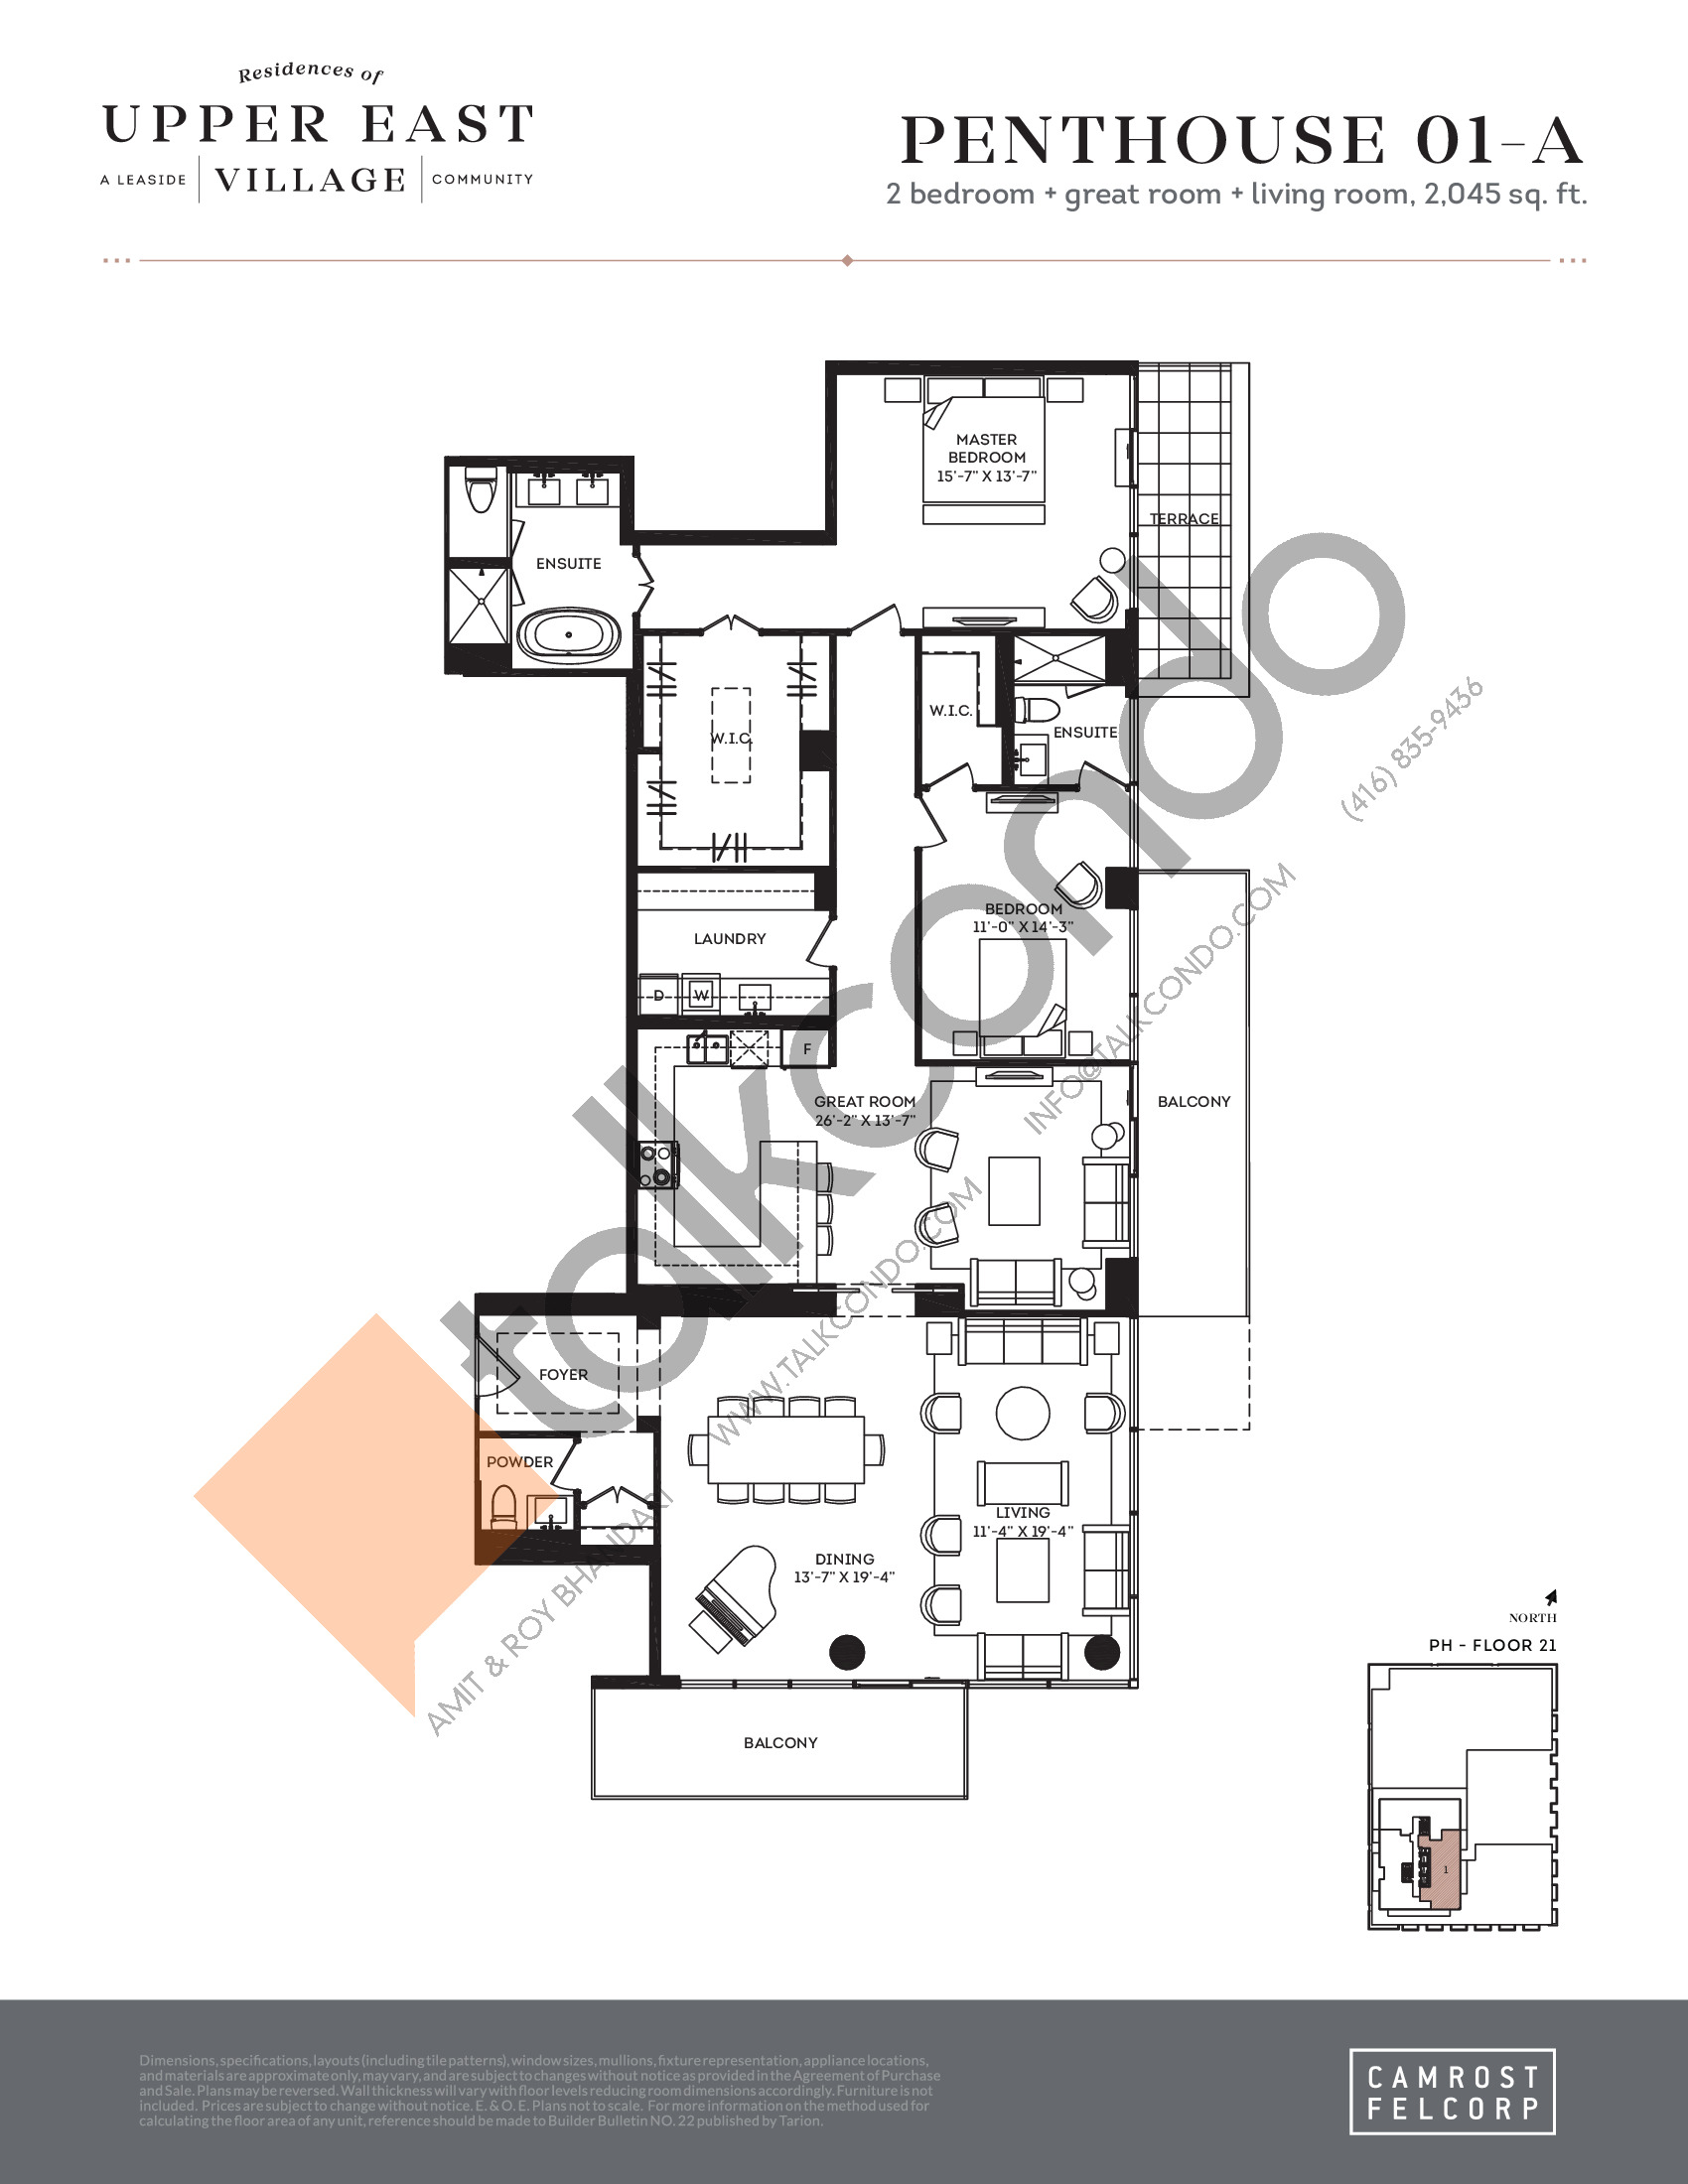 Penthouse 01-A Floor Plan at Upper East Village Condos - 2045 sq.ft